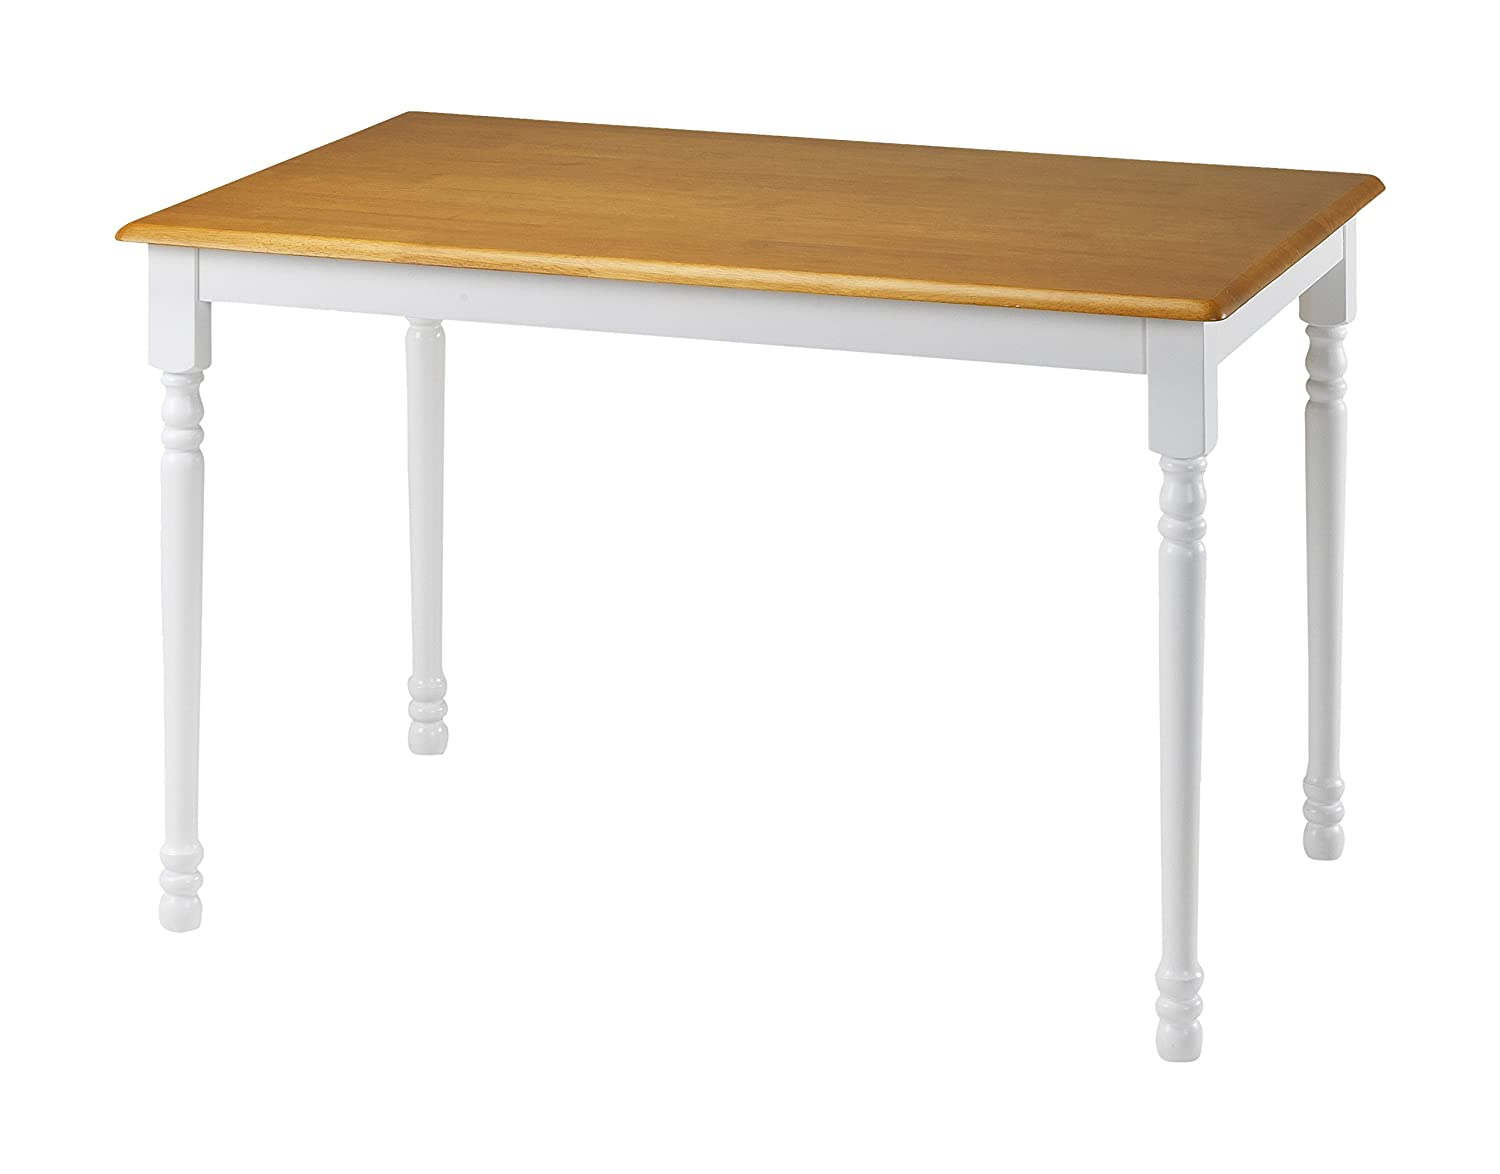 Indoor 4 seat dining table sturdy modern kitchen small space rectangle white oak Small white dining table